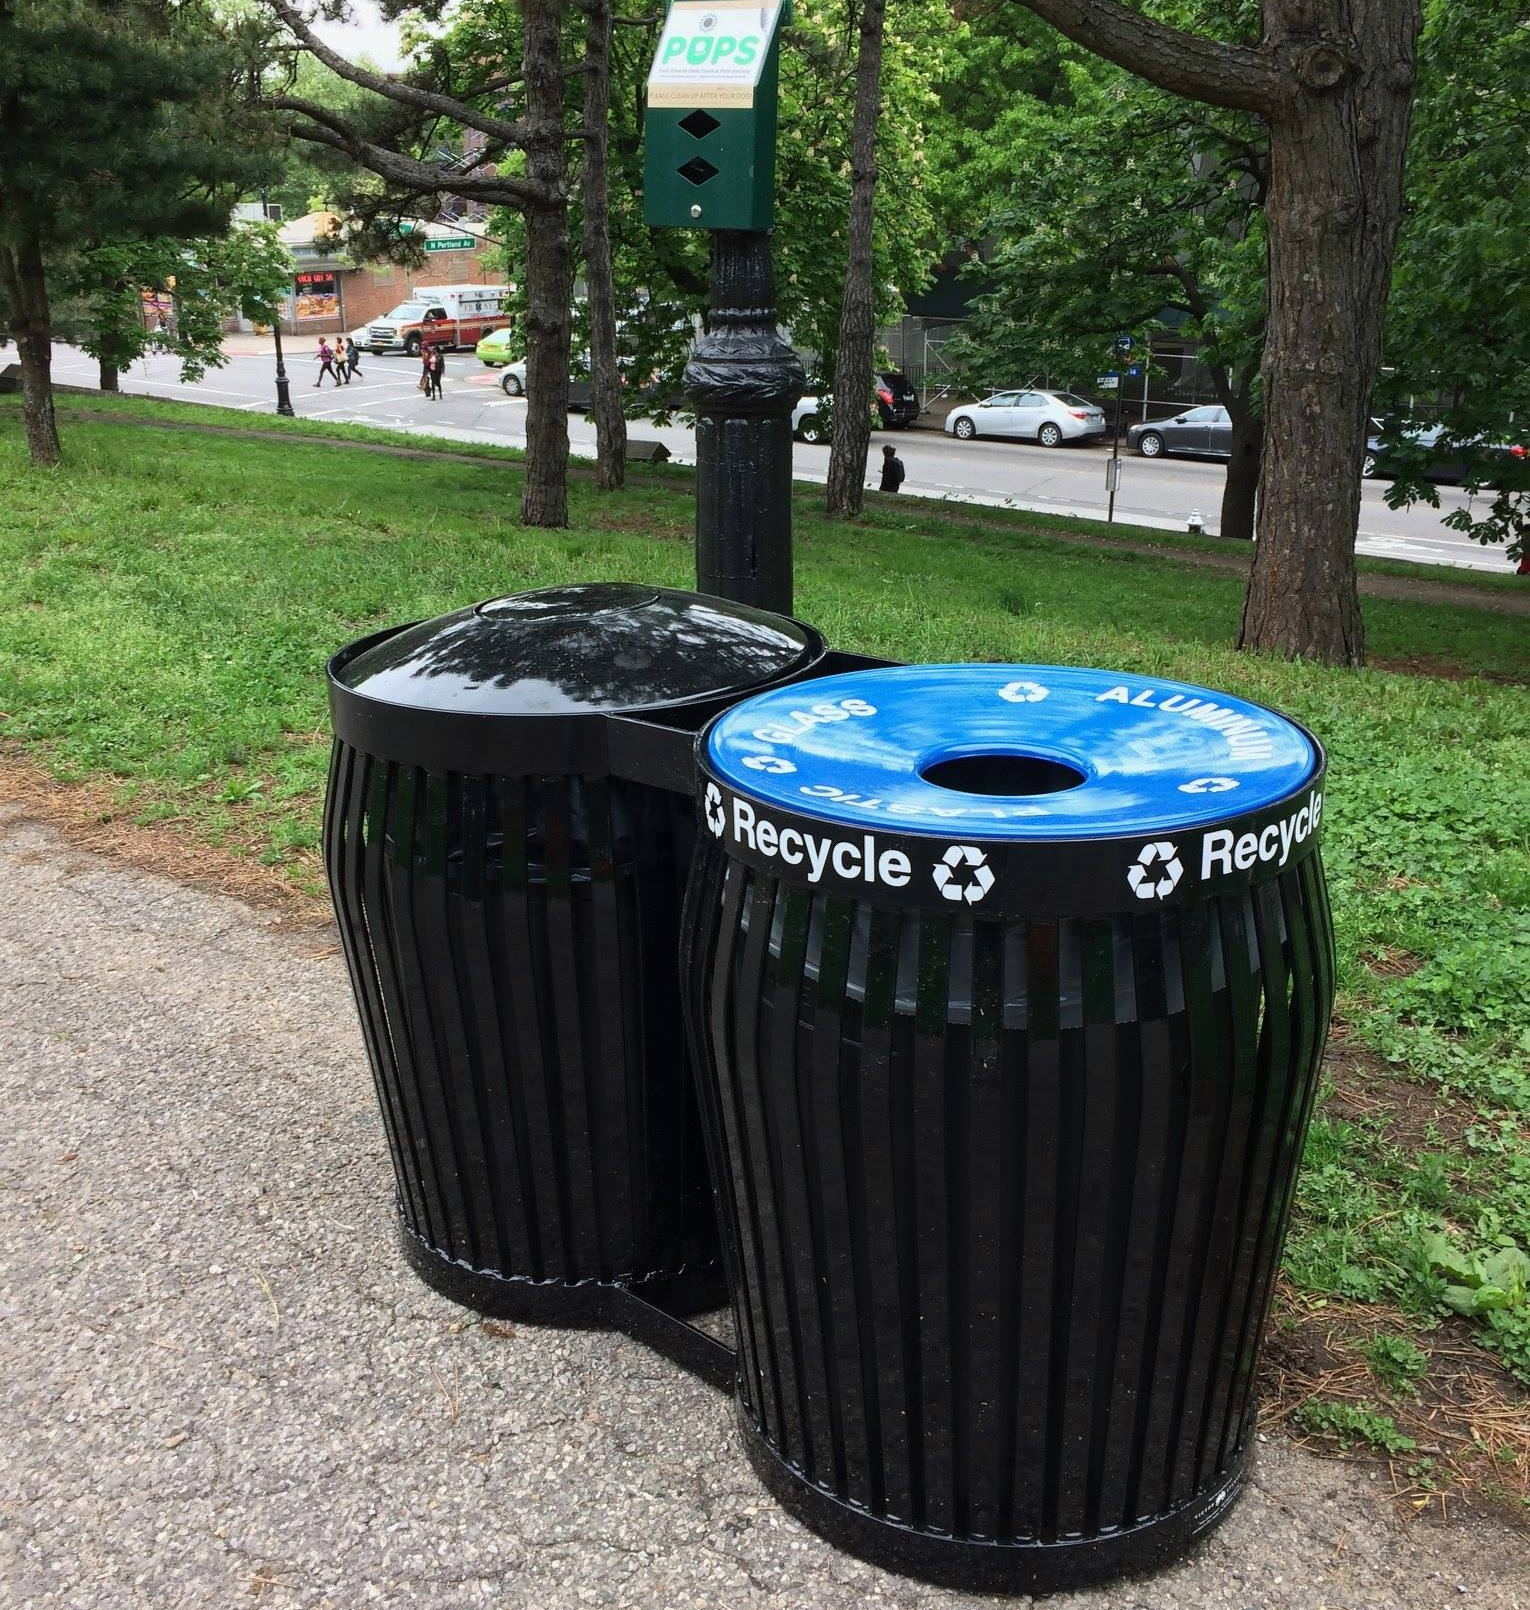 The introduction of recycling reduces the amount of waste sent to out of state landfills. Please recycle all metal, rigid plastics, and glass bottles in the blue receptacles.